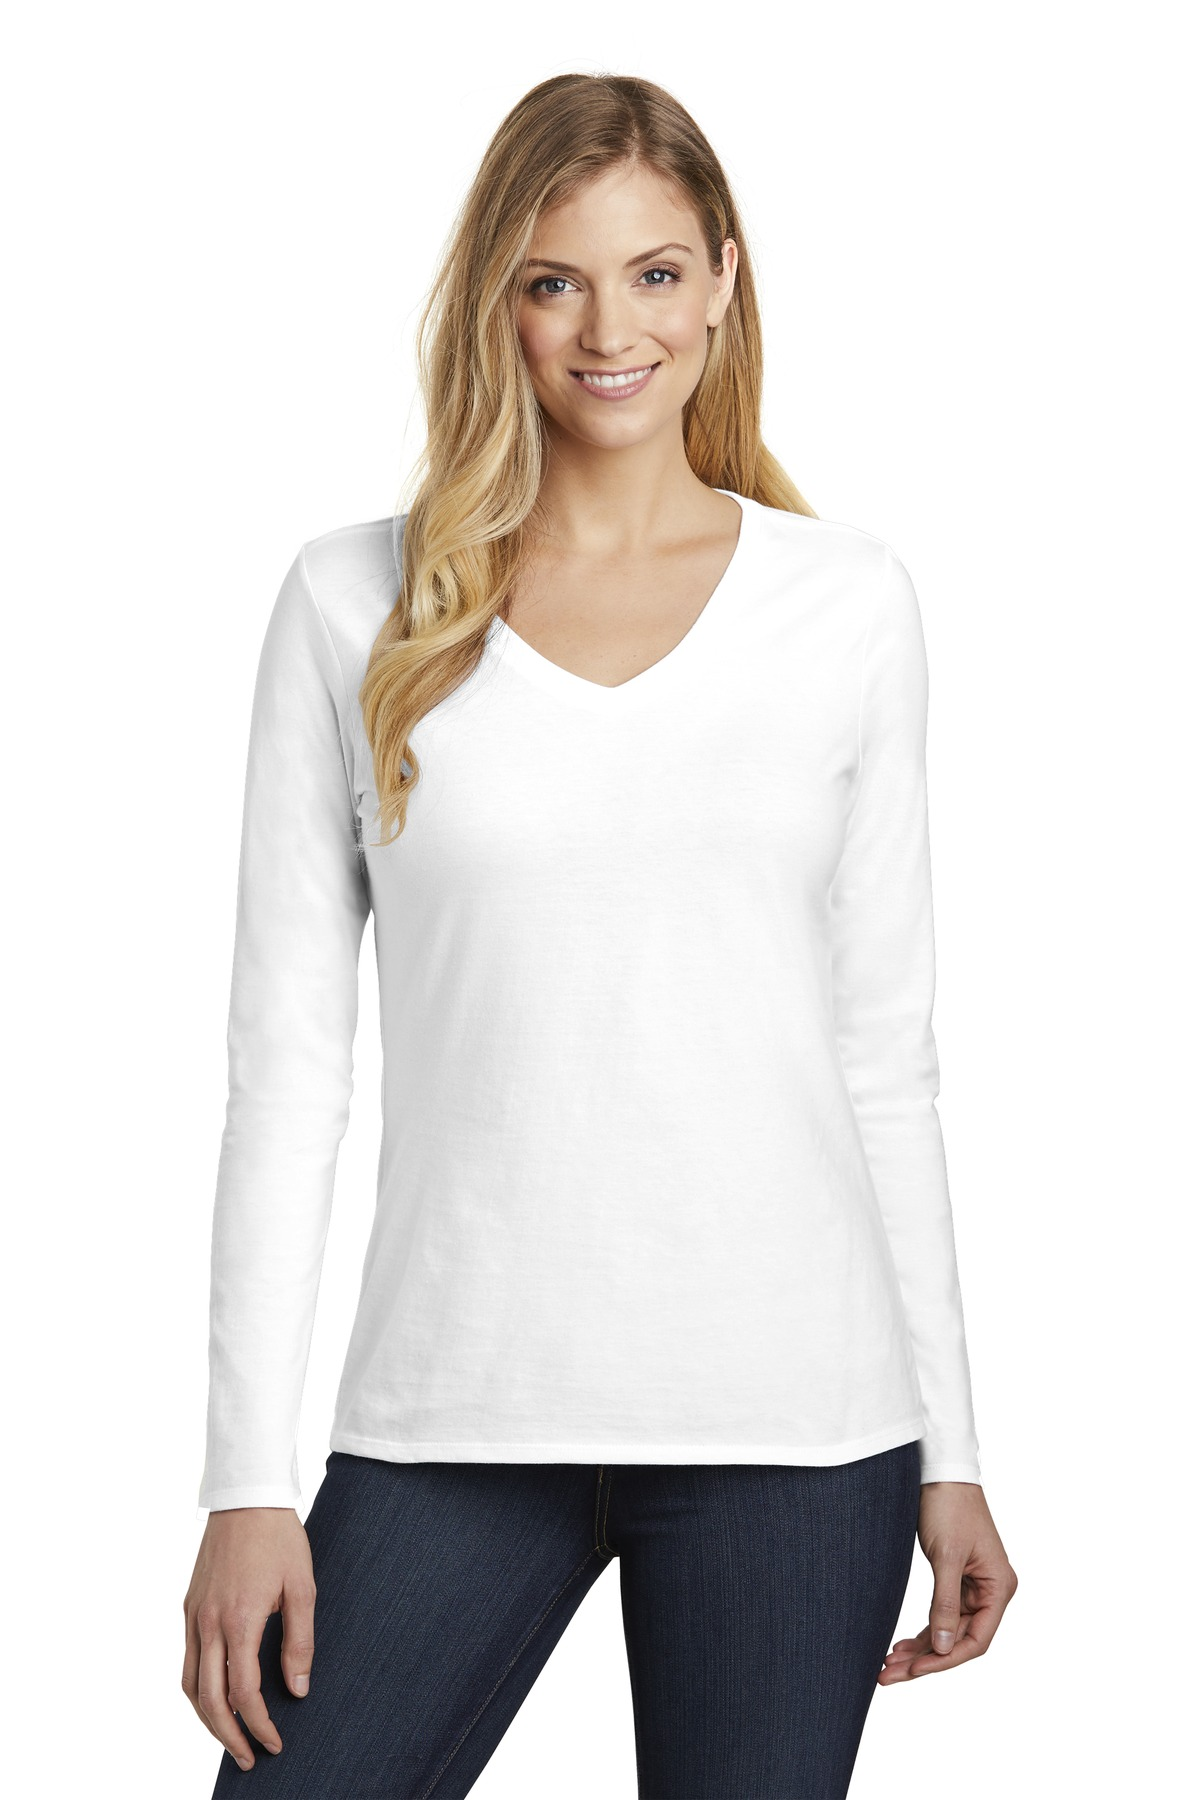 District  ®  Women's Very Important Tee  ®  Long Sleeve V-Neck. DT6201 - White